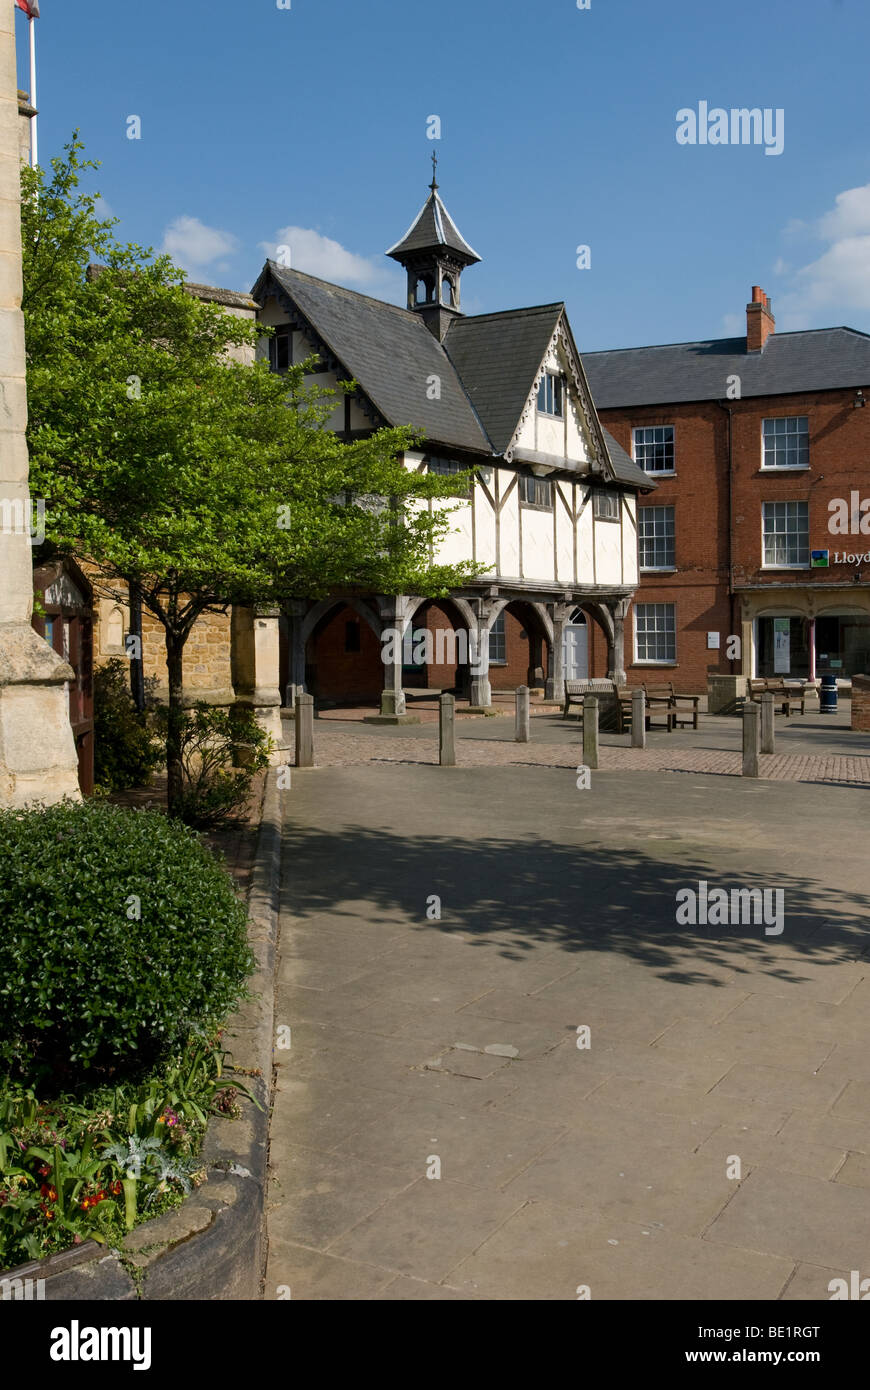 The old grammar school in the centre of Market Harborough, Leicestershire - Stock Image